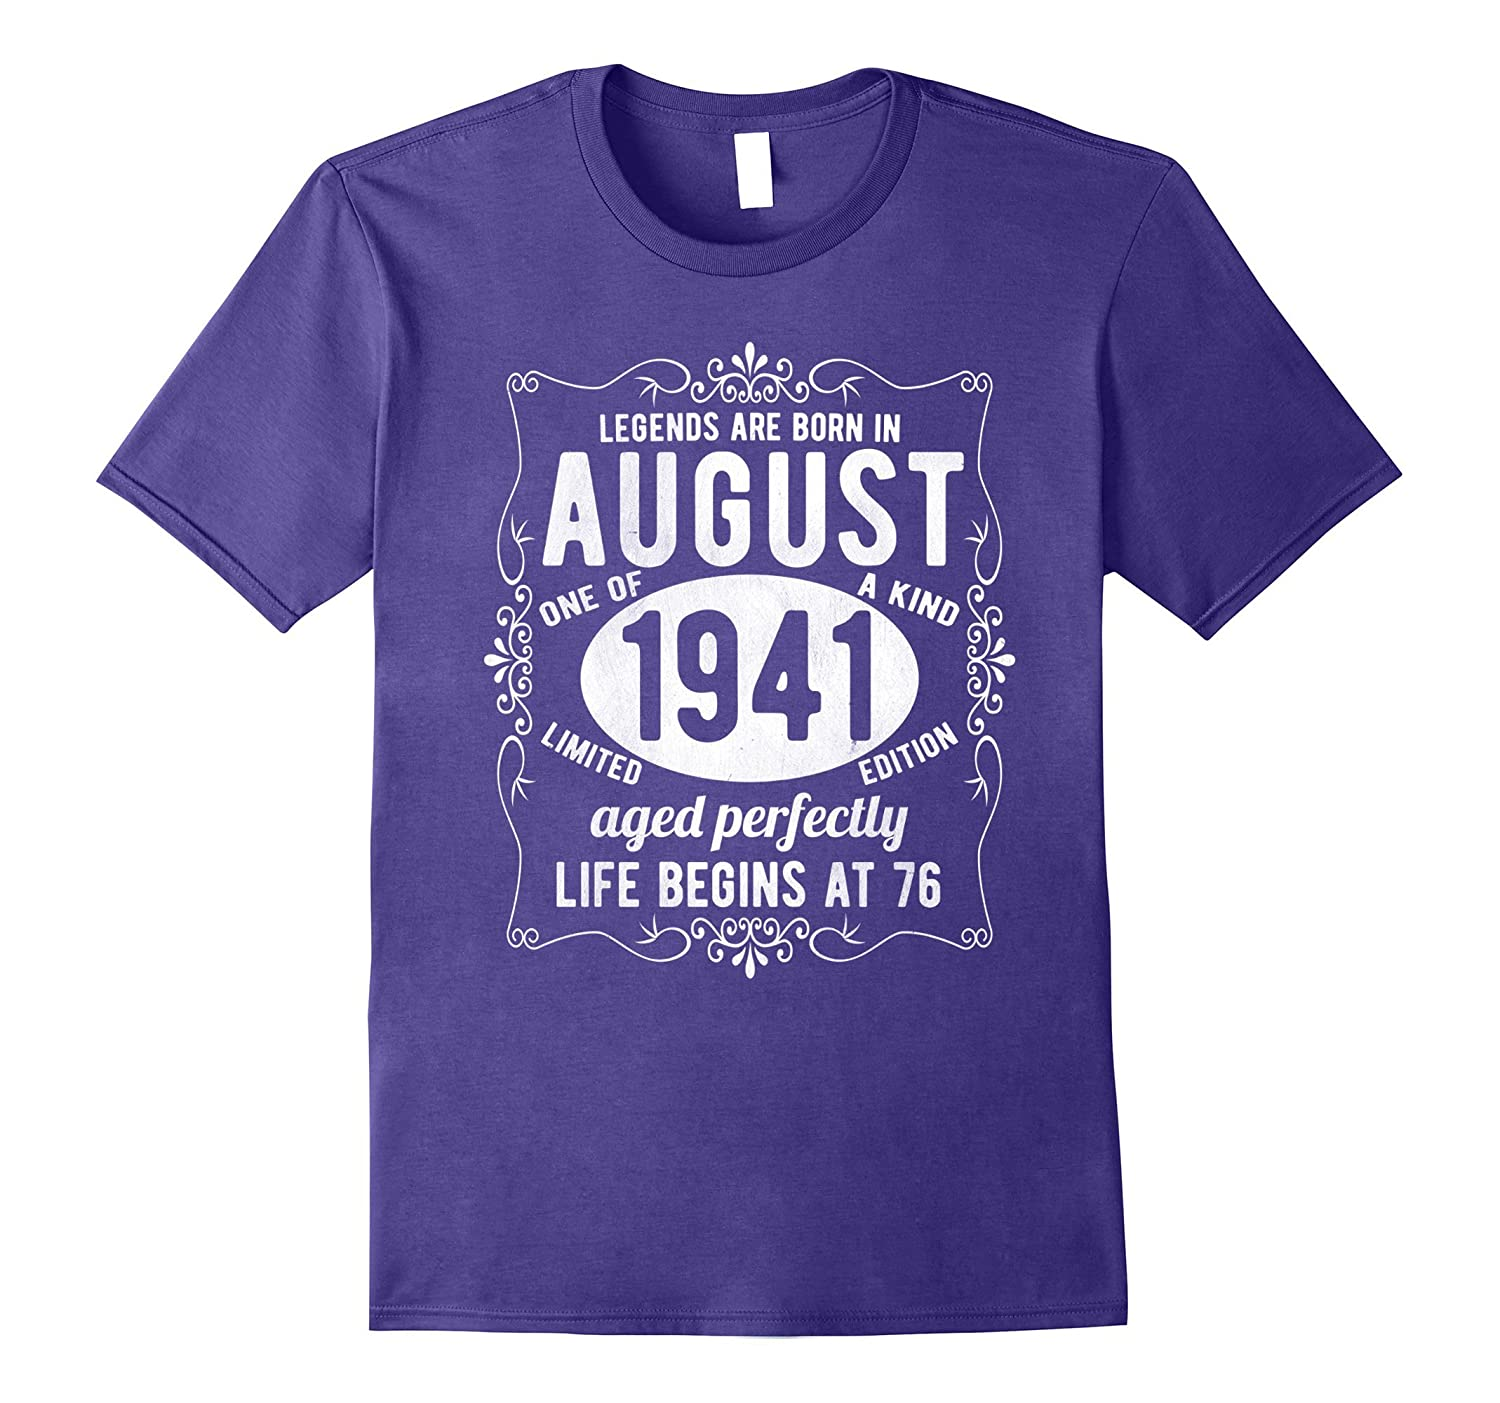 76th Birthday August 1941 T Shirt The Birth Of Legends Gift